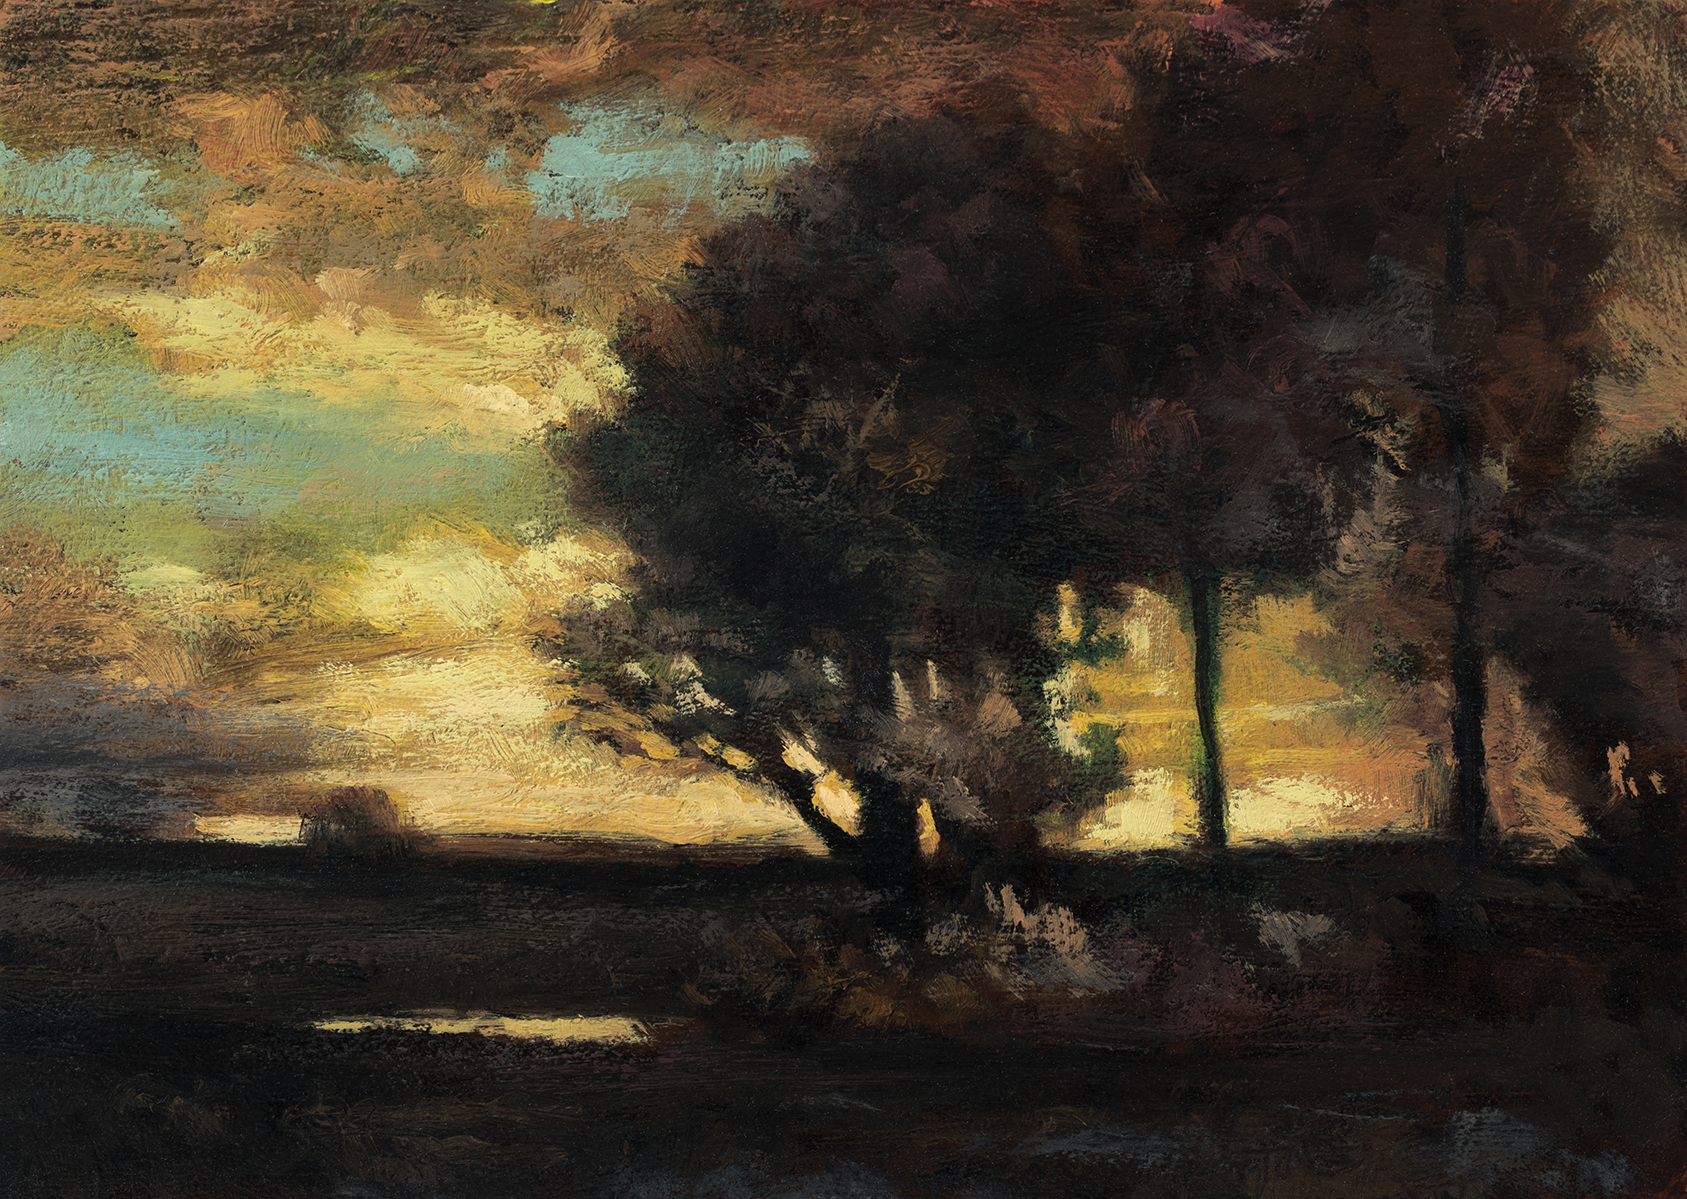 Study after: John Francis Murphy - Evening by M Francis McCarthy - 5x7 Oil on Wood Panel